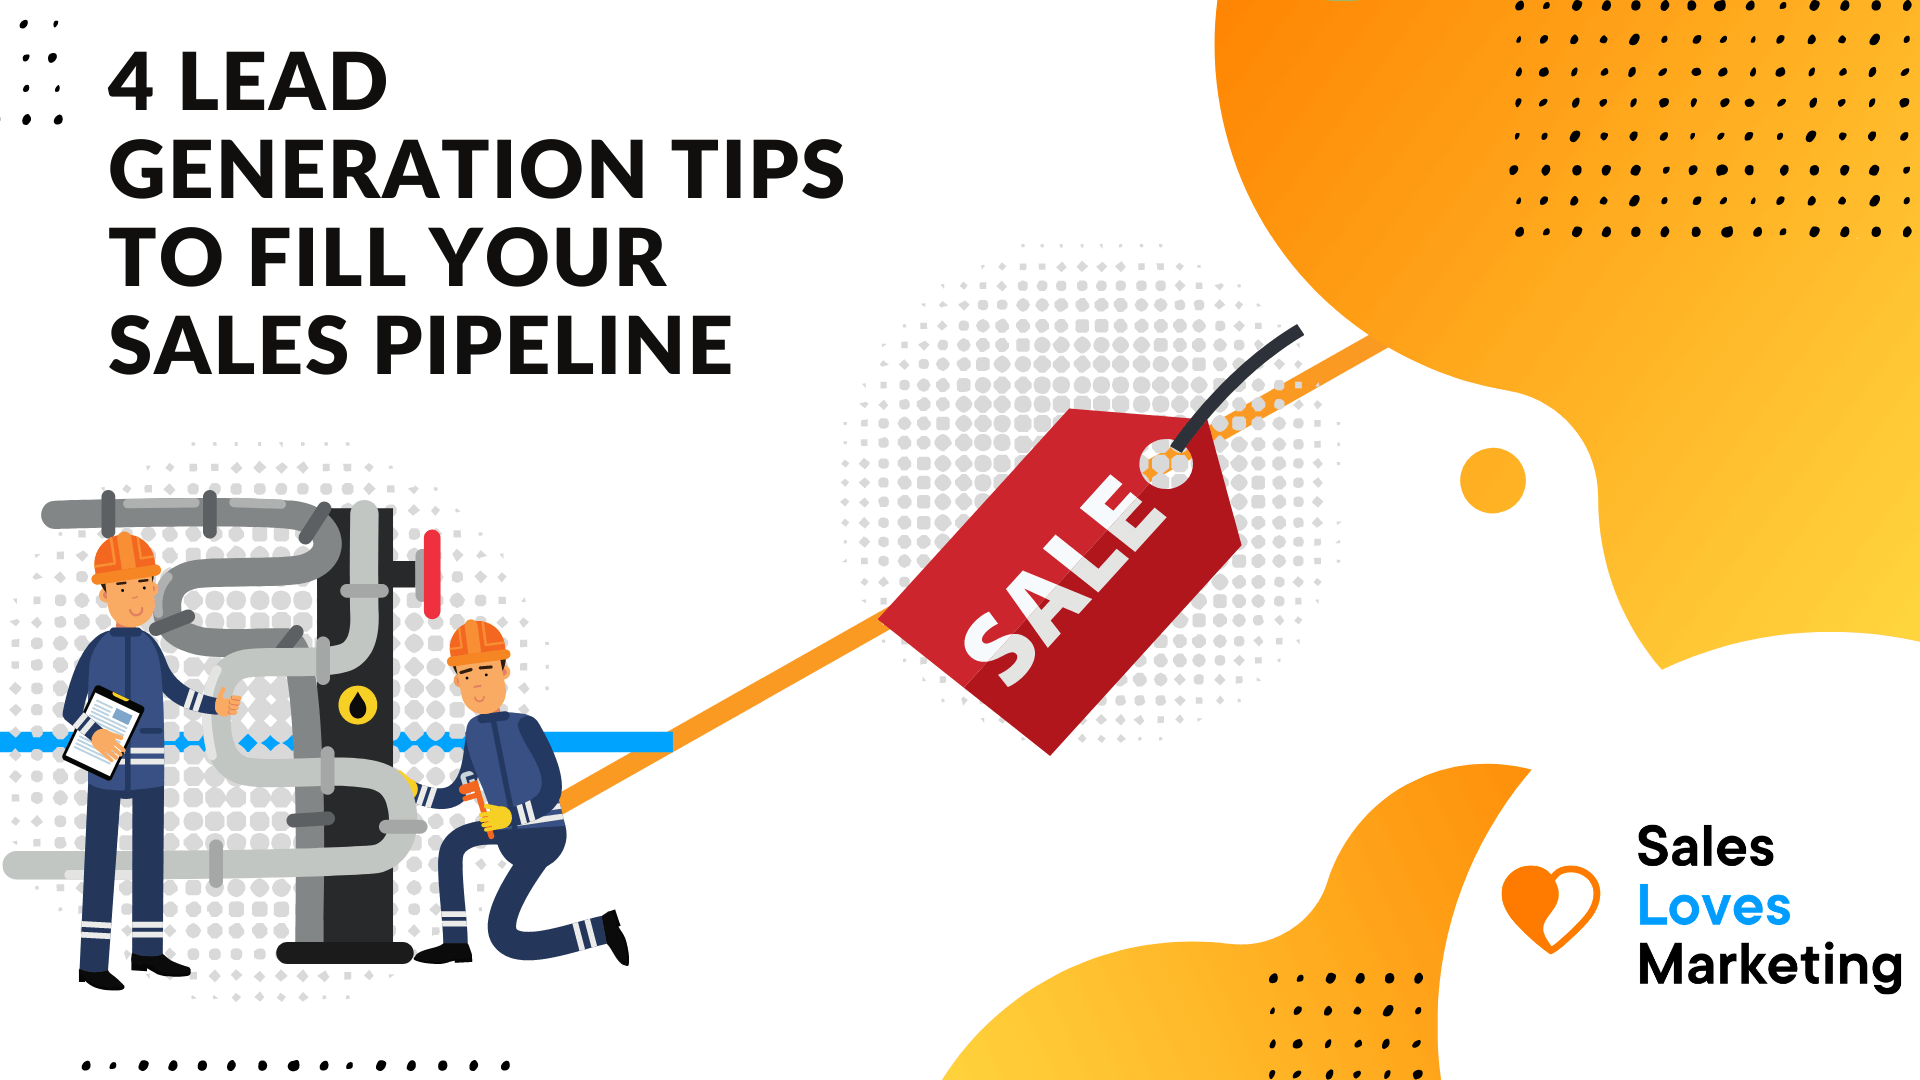 lead generation tips for businesses.